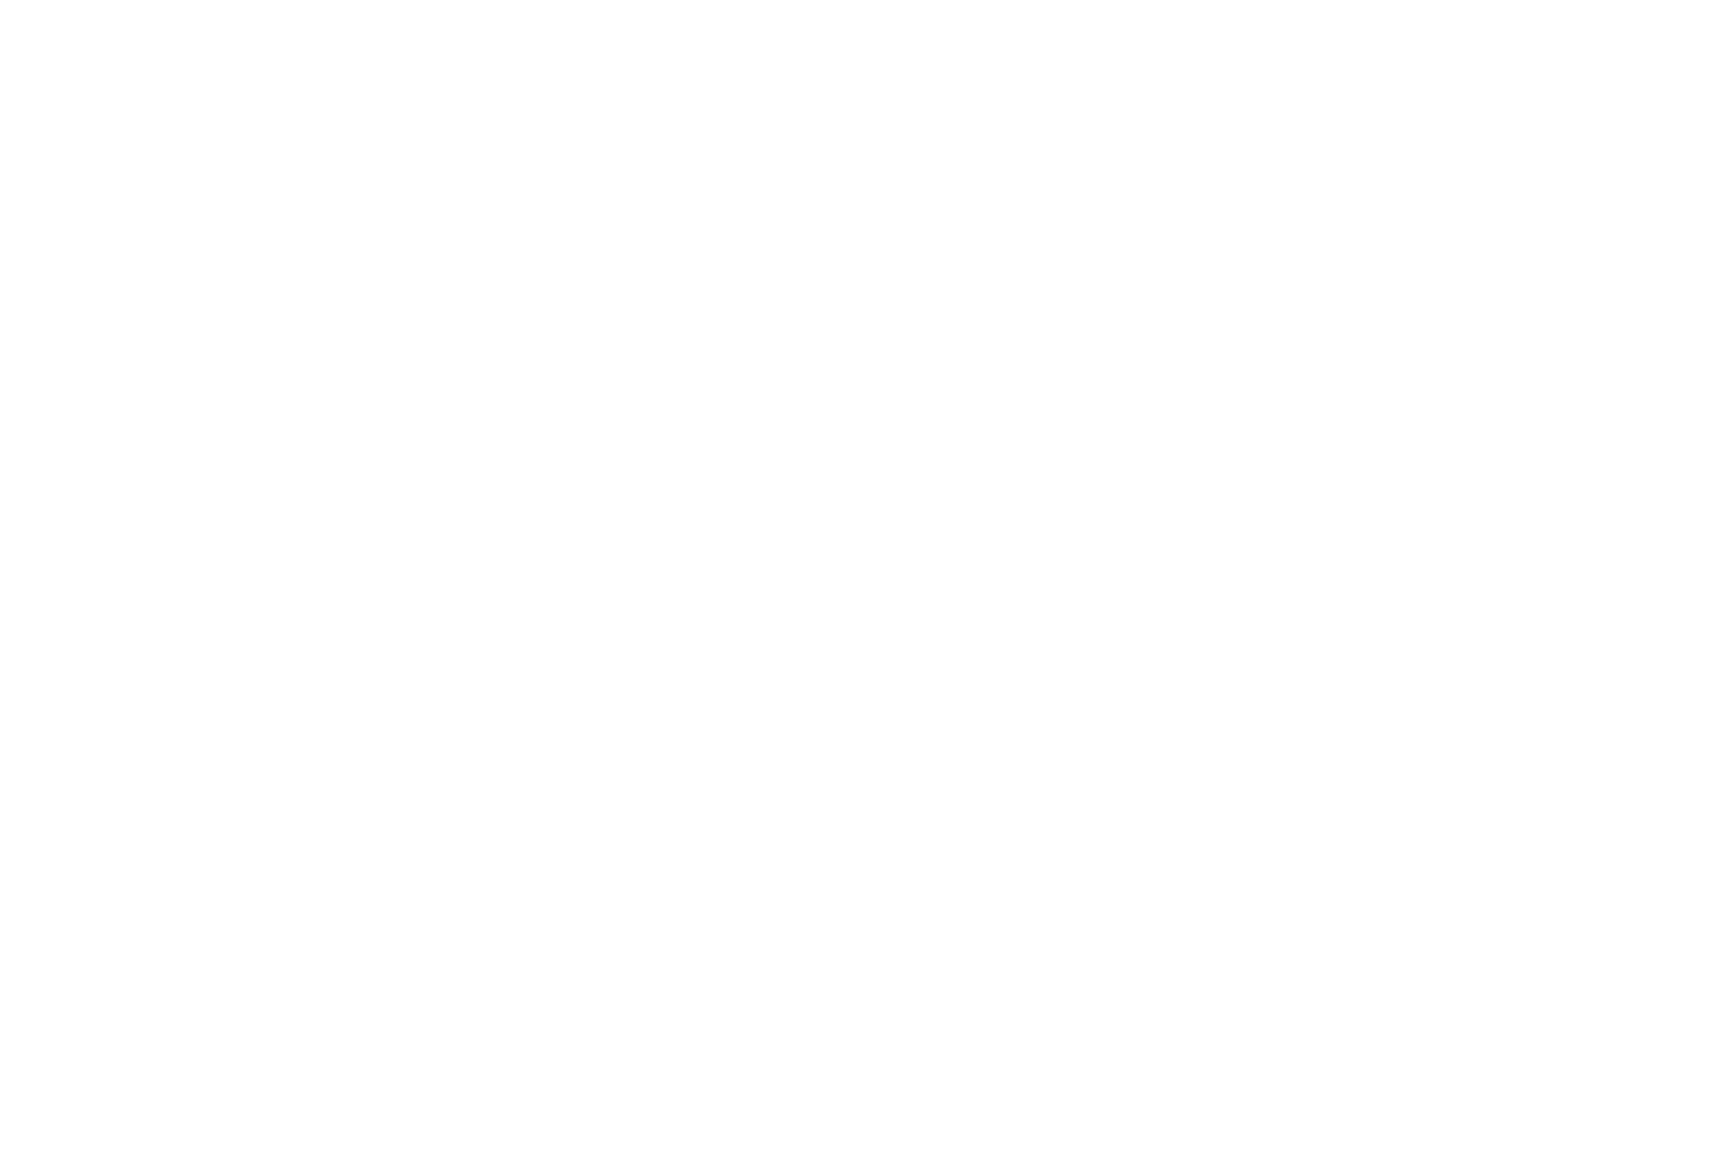 OFFICIAL SELECTION - Kansas International Film Festival - 2018.png